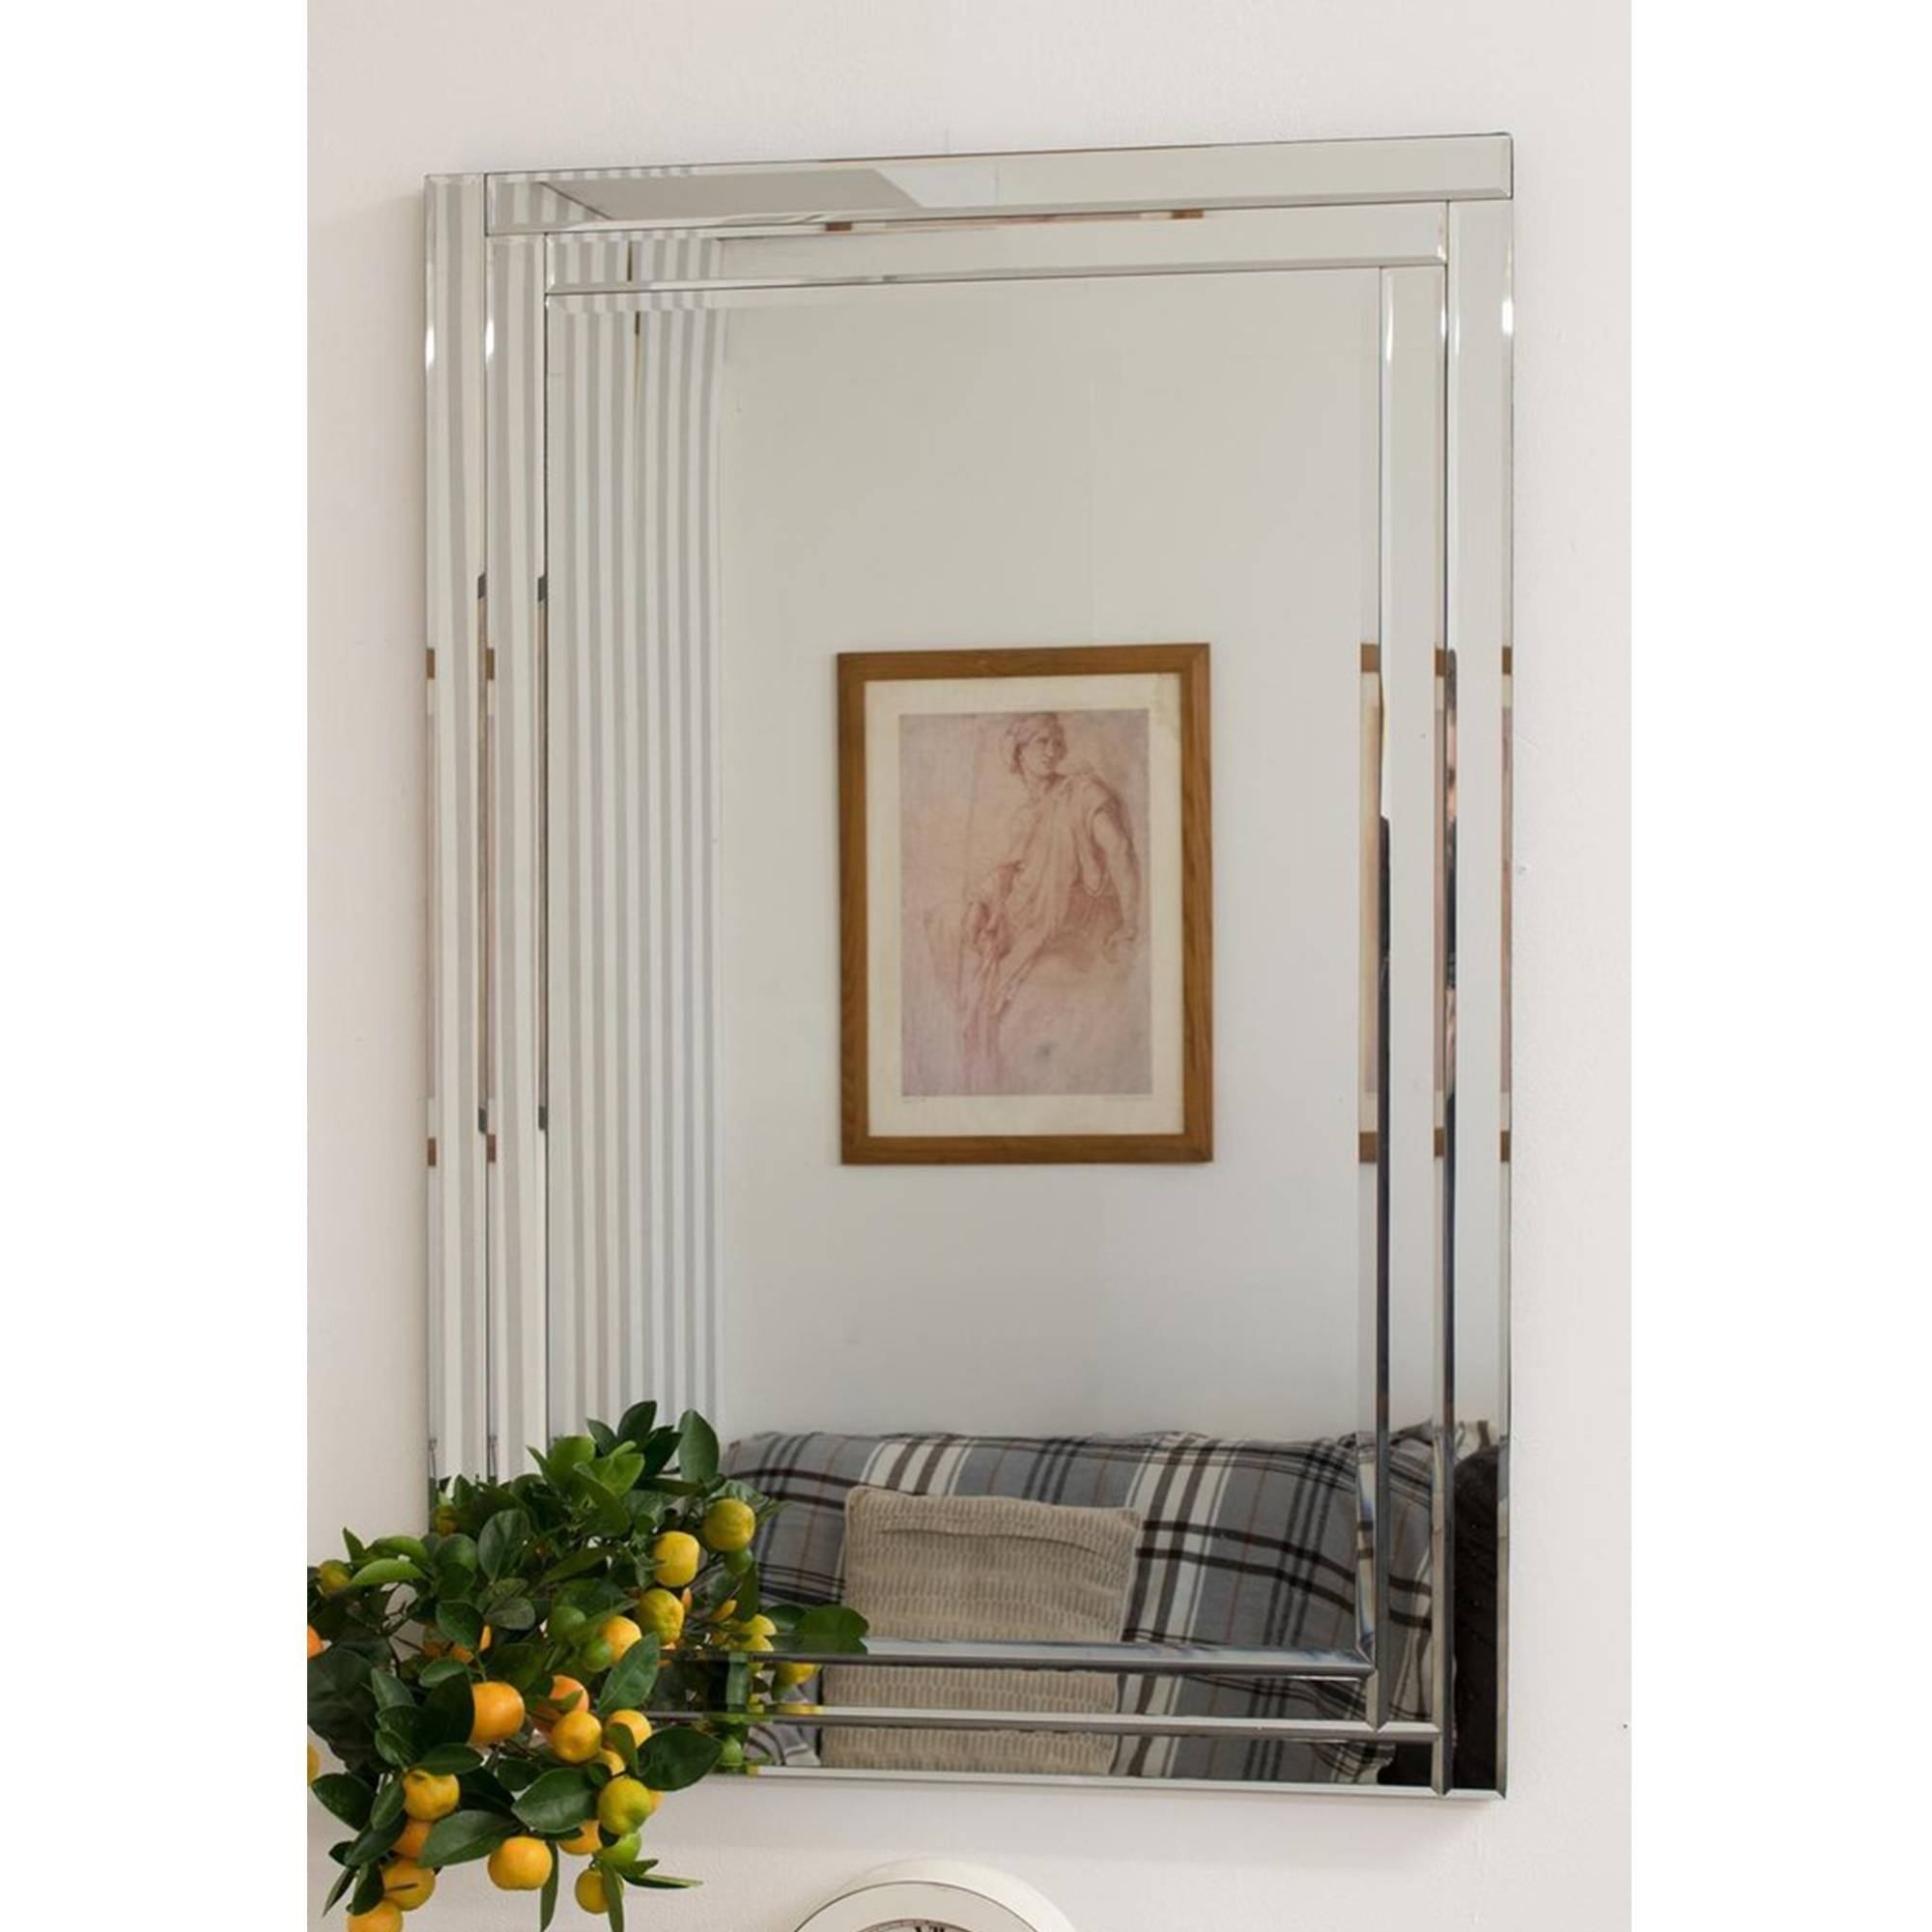 Small Luxington Venetian Mirror | Decorative Glass Mirrors with regard to Small Venetian Mirrors (Image 18 of 25)